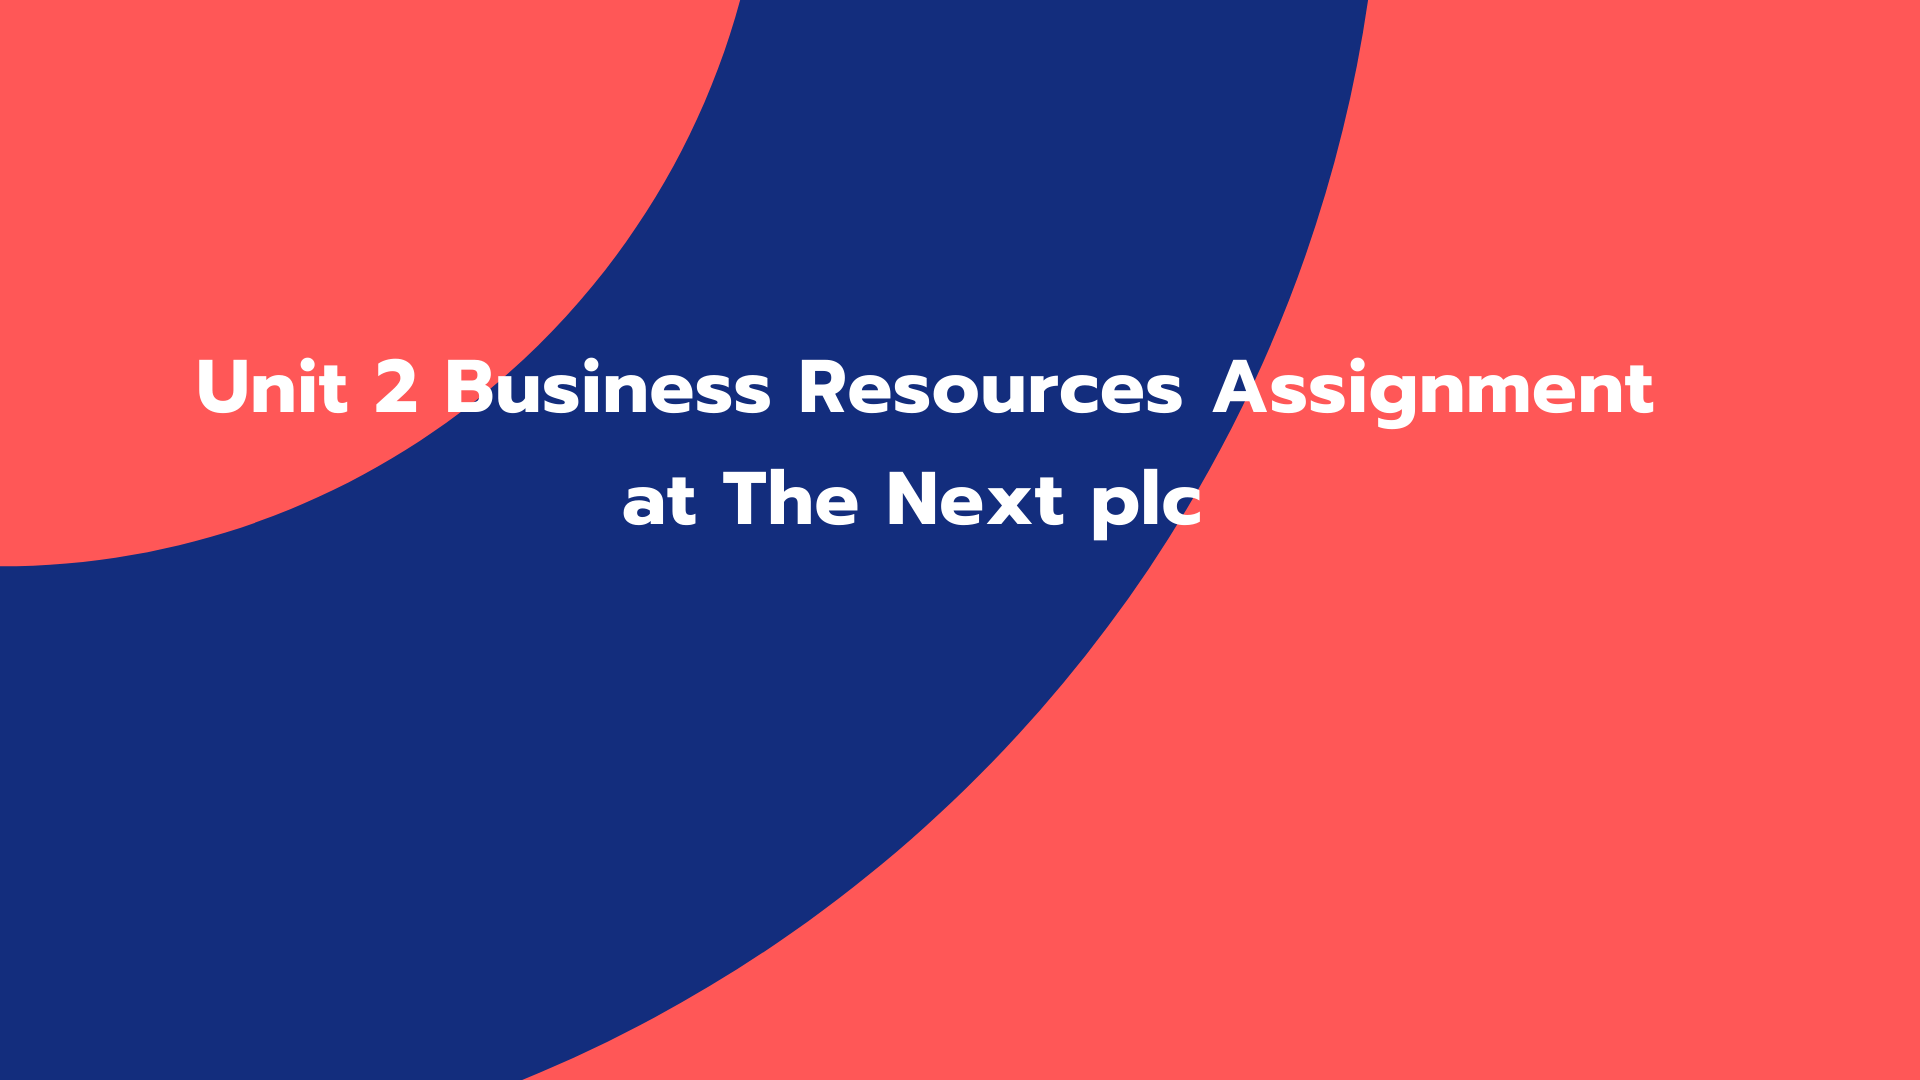 Unit 2 Business Resources Assignment at The Next plc